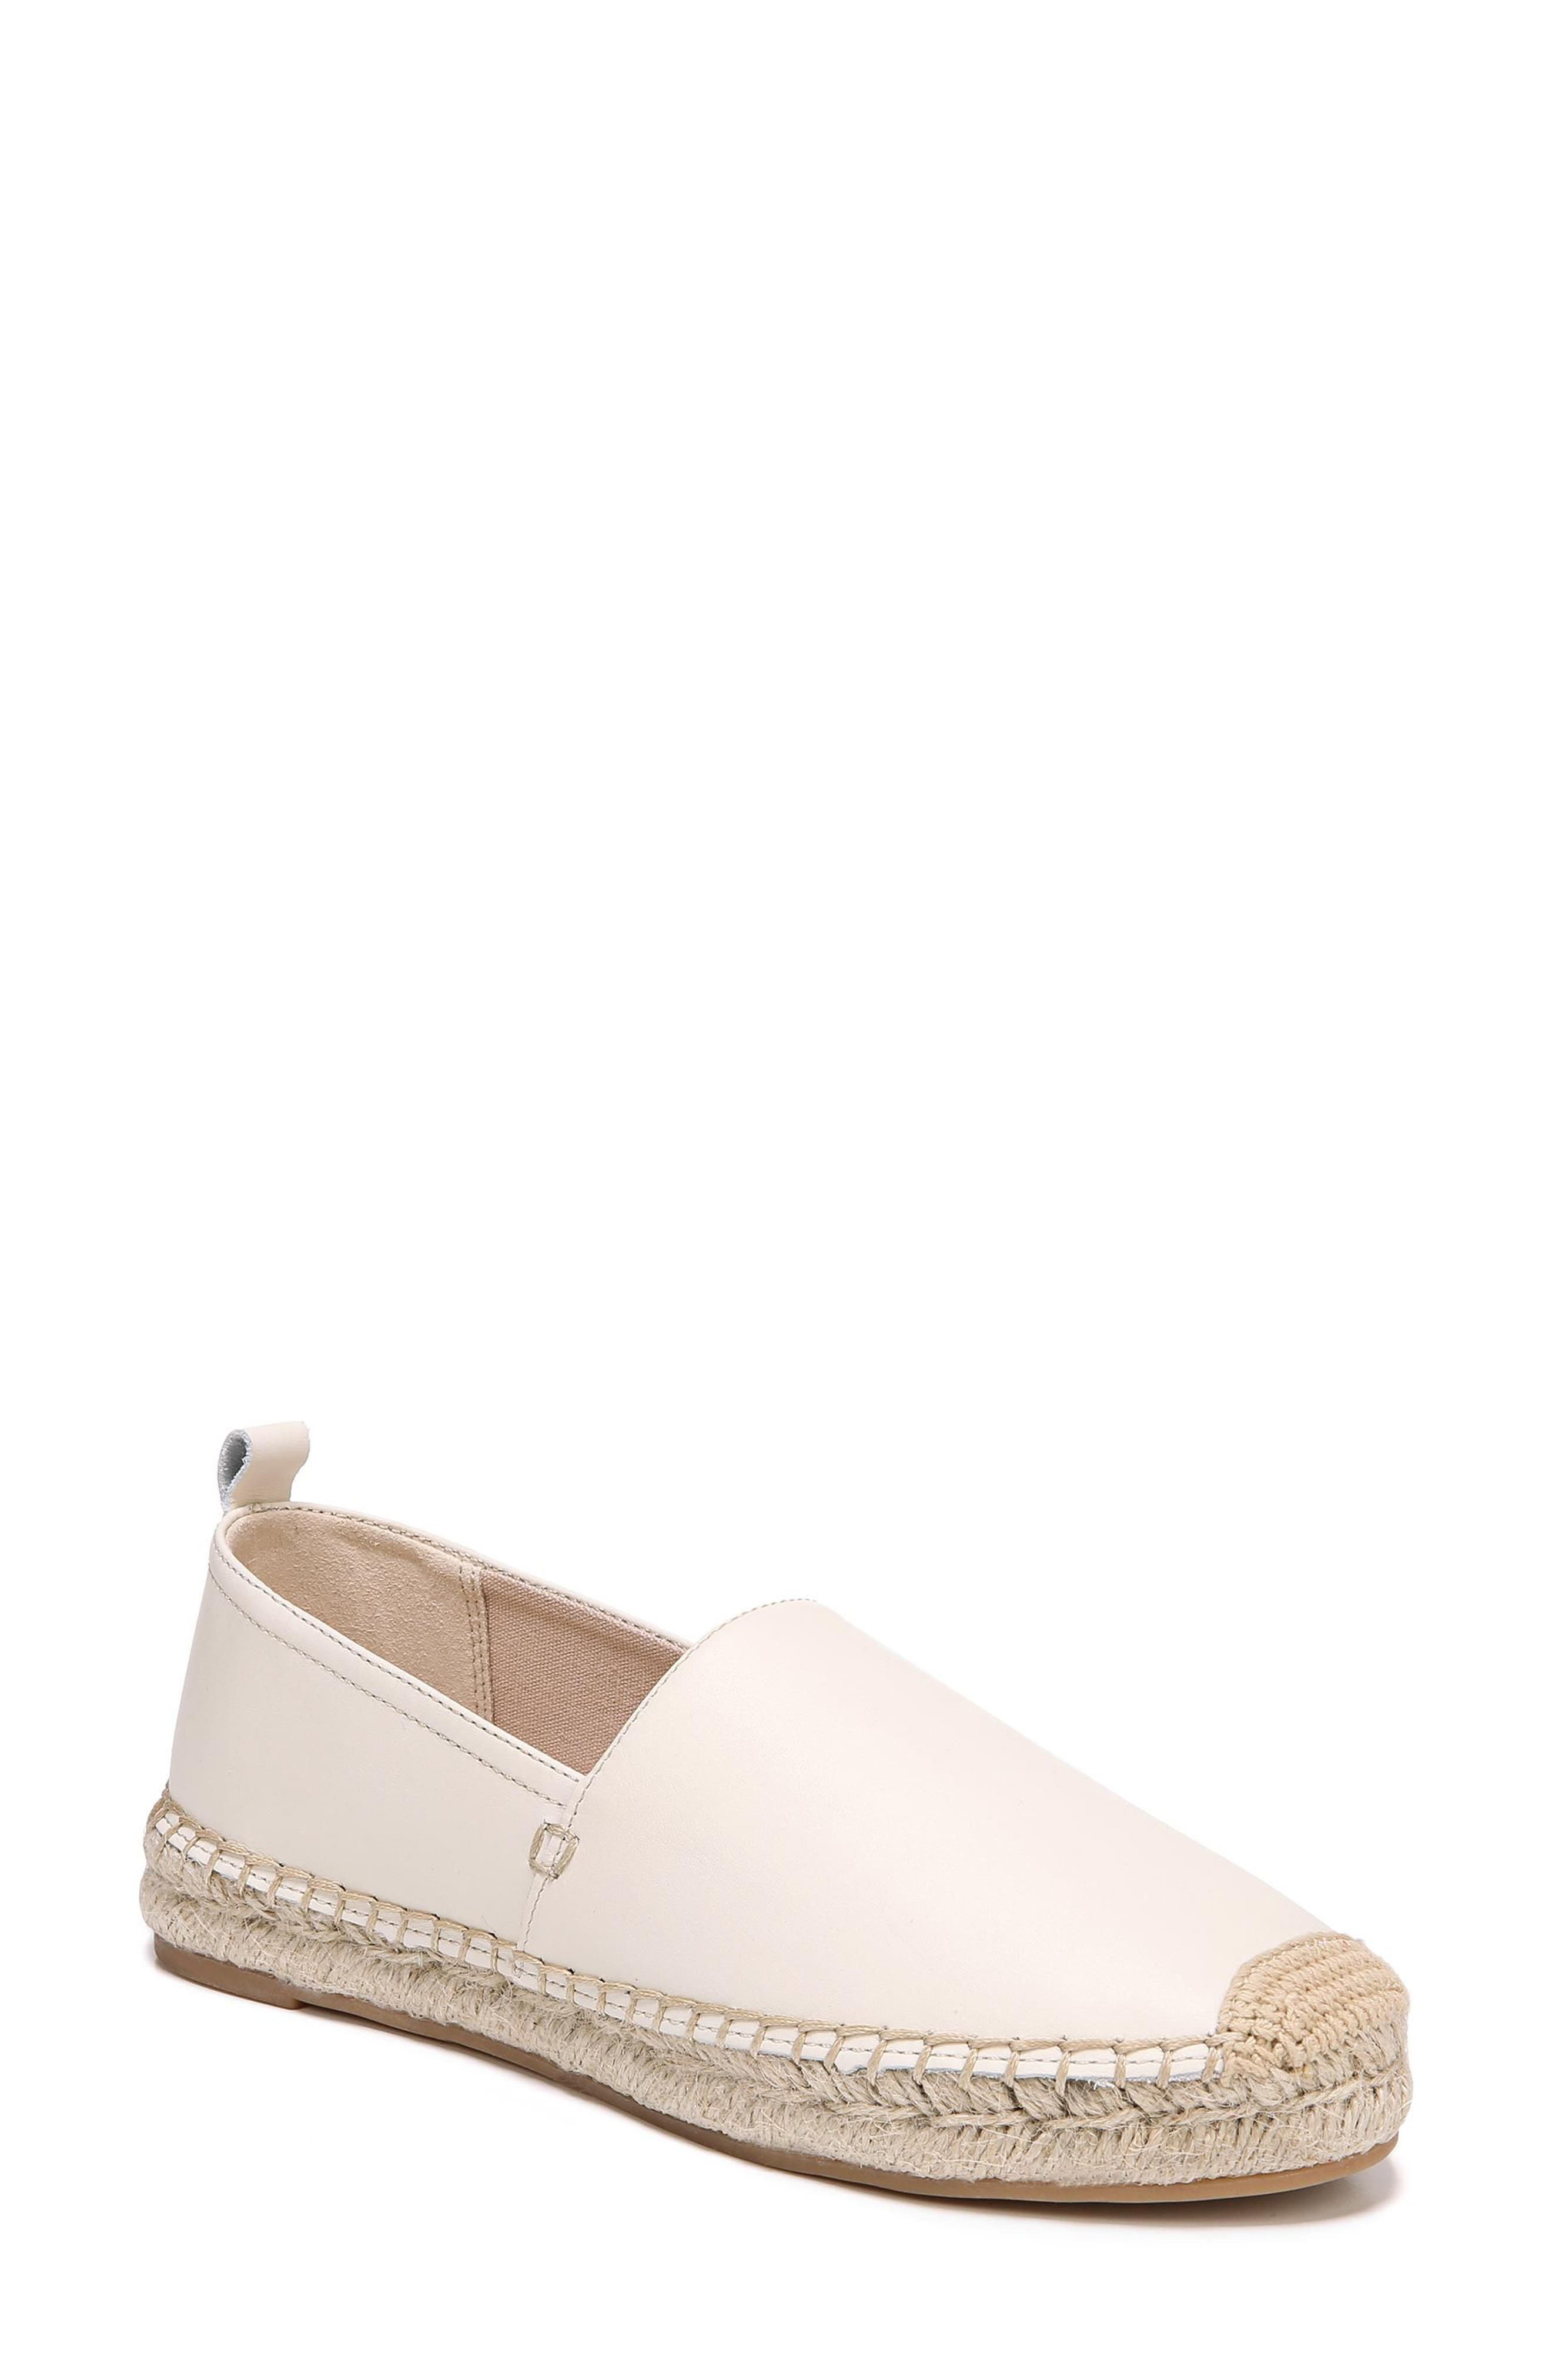 Khloe Espadrille Flat,                         Main,                         color, Modern Ivory Leather